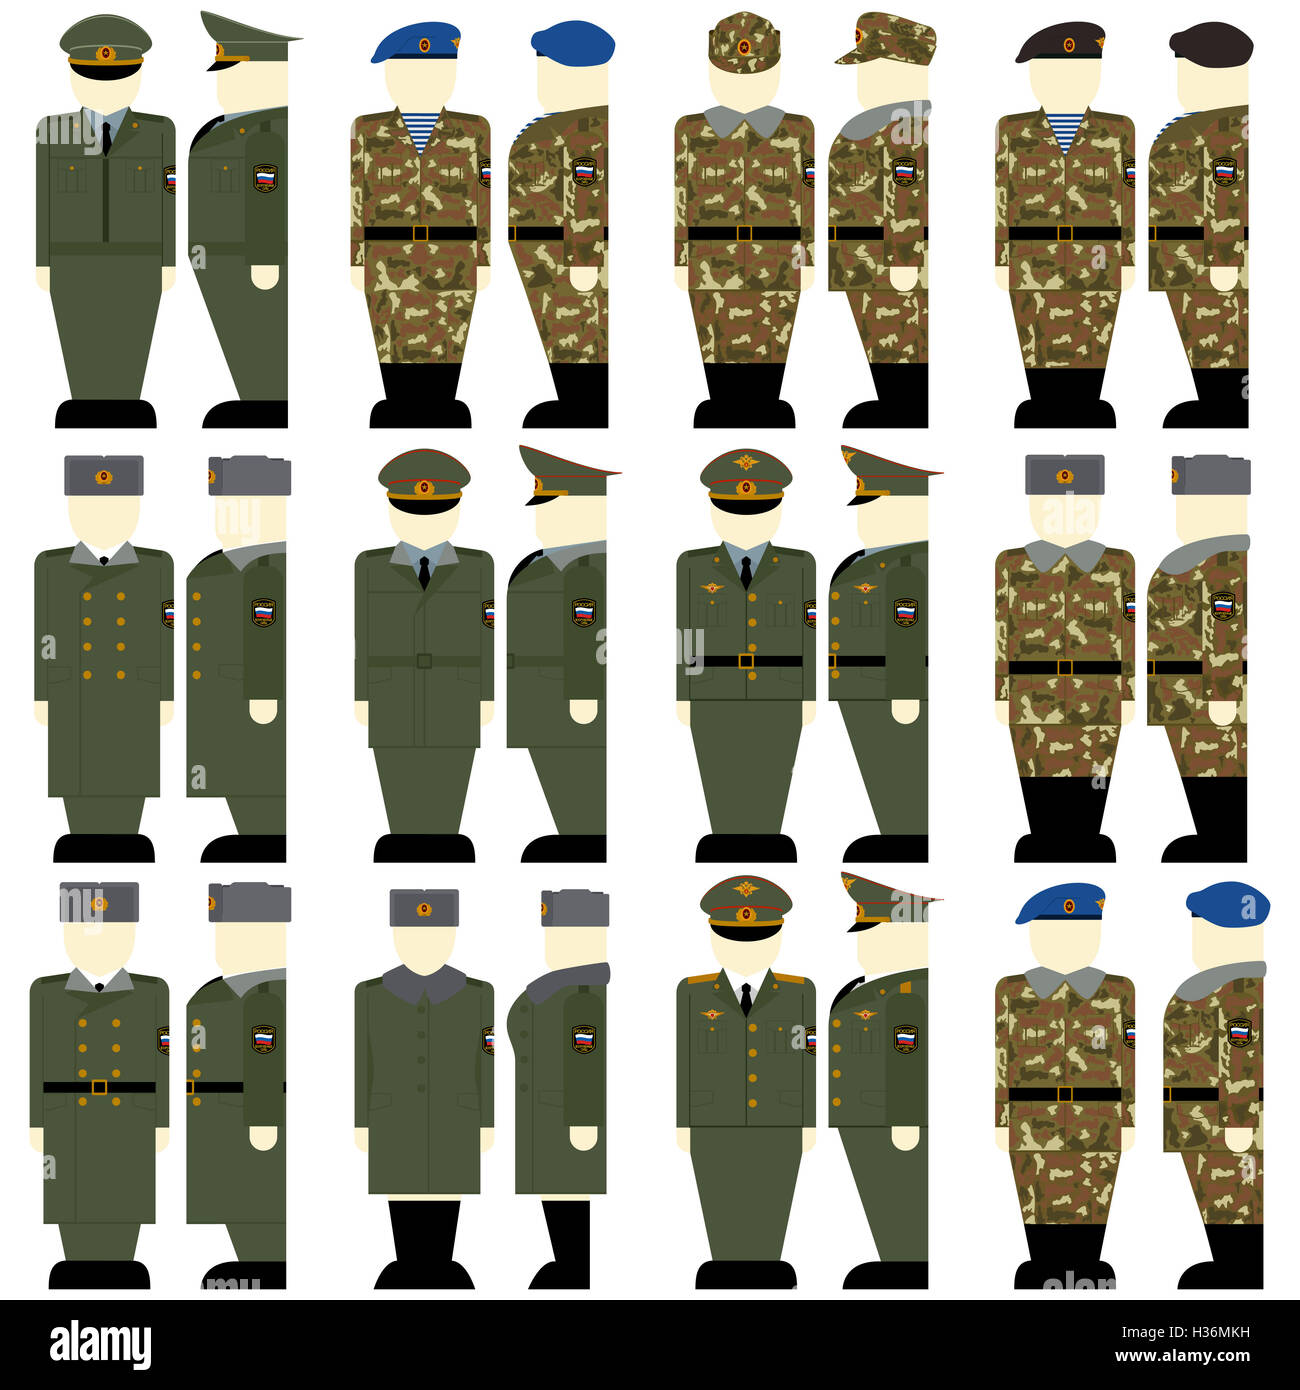 d801ab614f5 Uniforms and insignia of soldiers and officers of the Russian Federation.  The illustration on a